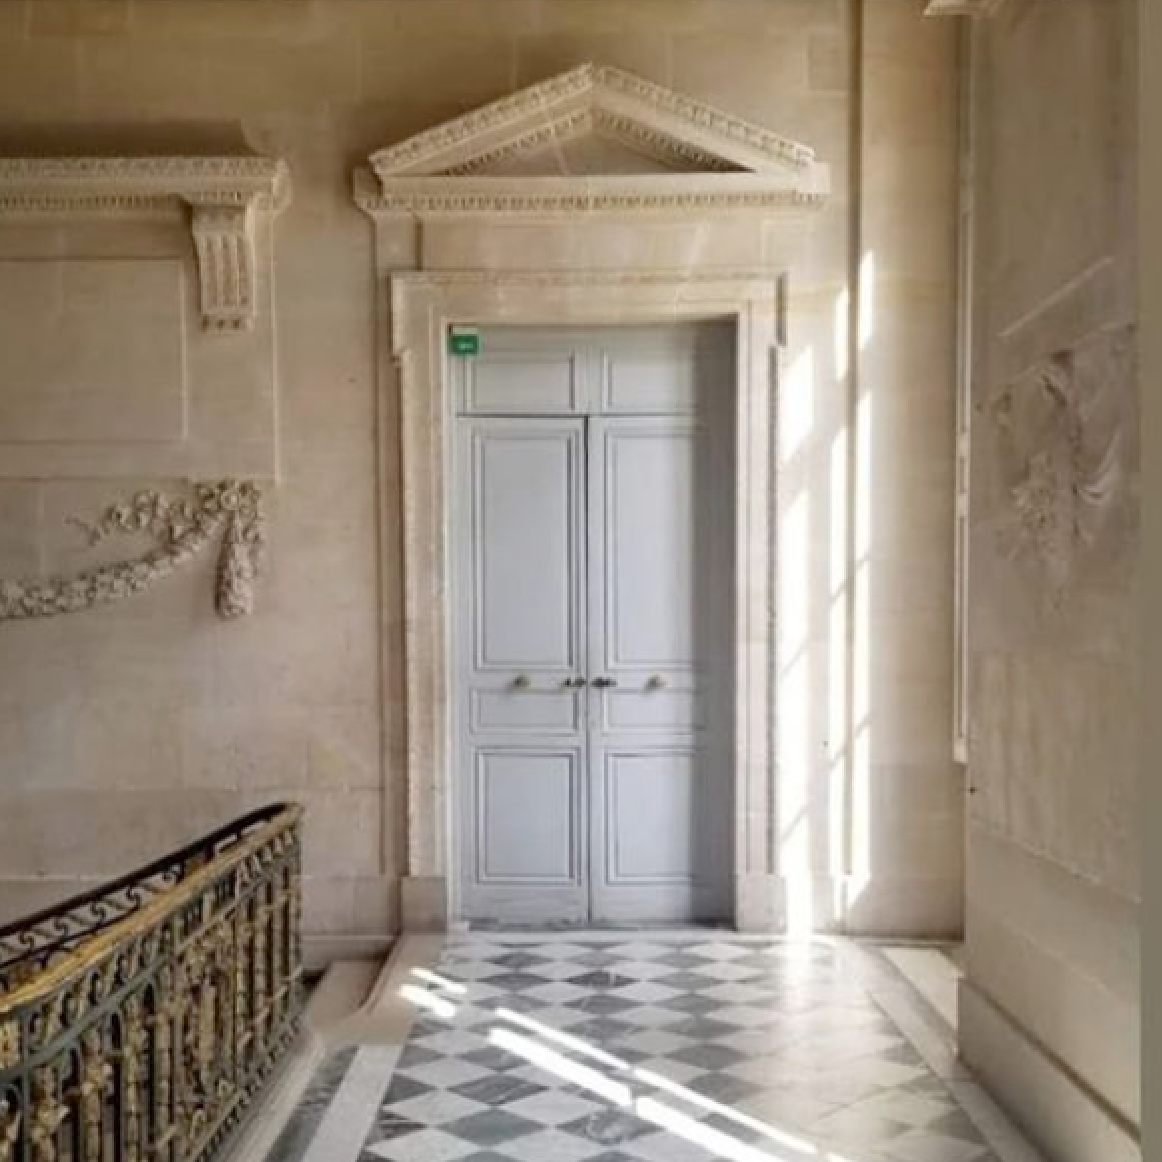 Magnificent stone and architecture inside Chateau Versailles - The French Nest Co Interior Design. #petittrianon #chateauversaiiles #oldworldstyle #frenchcountry